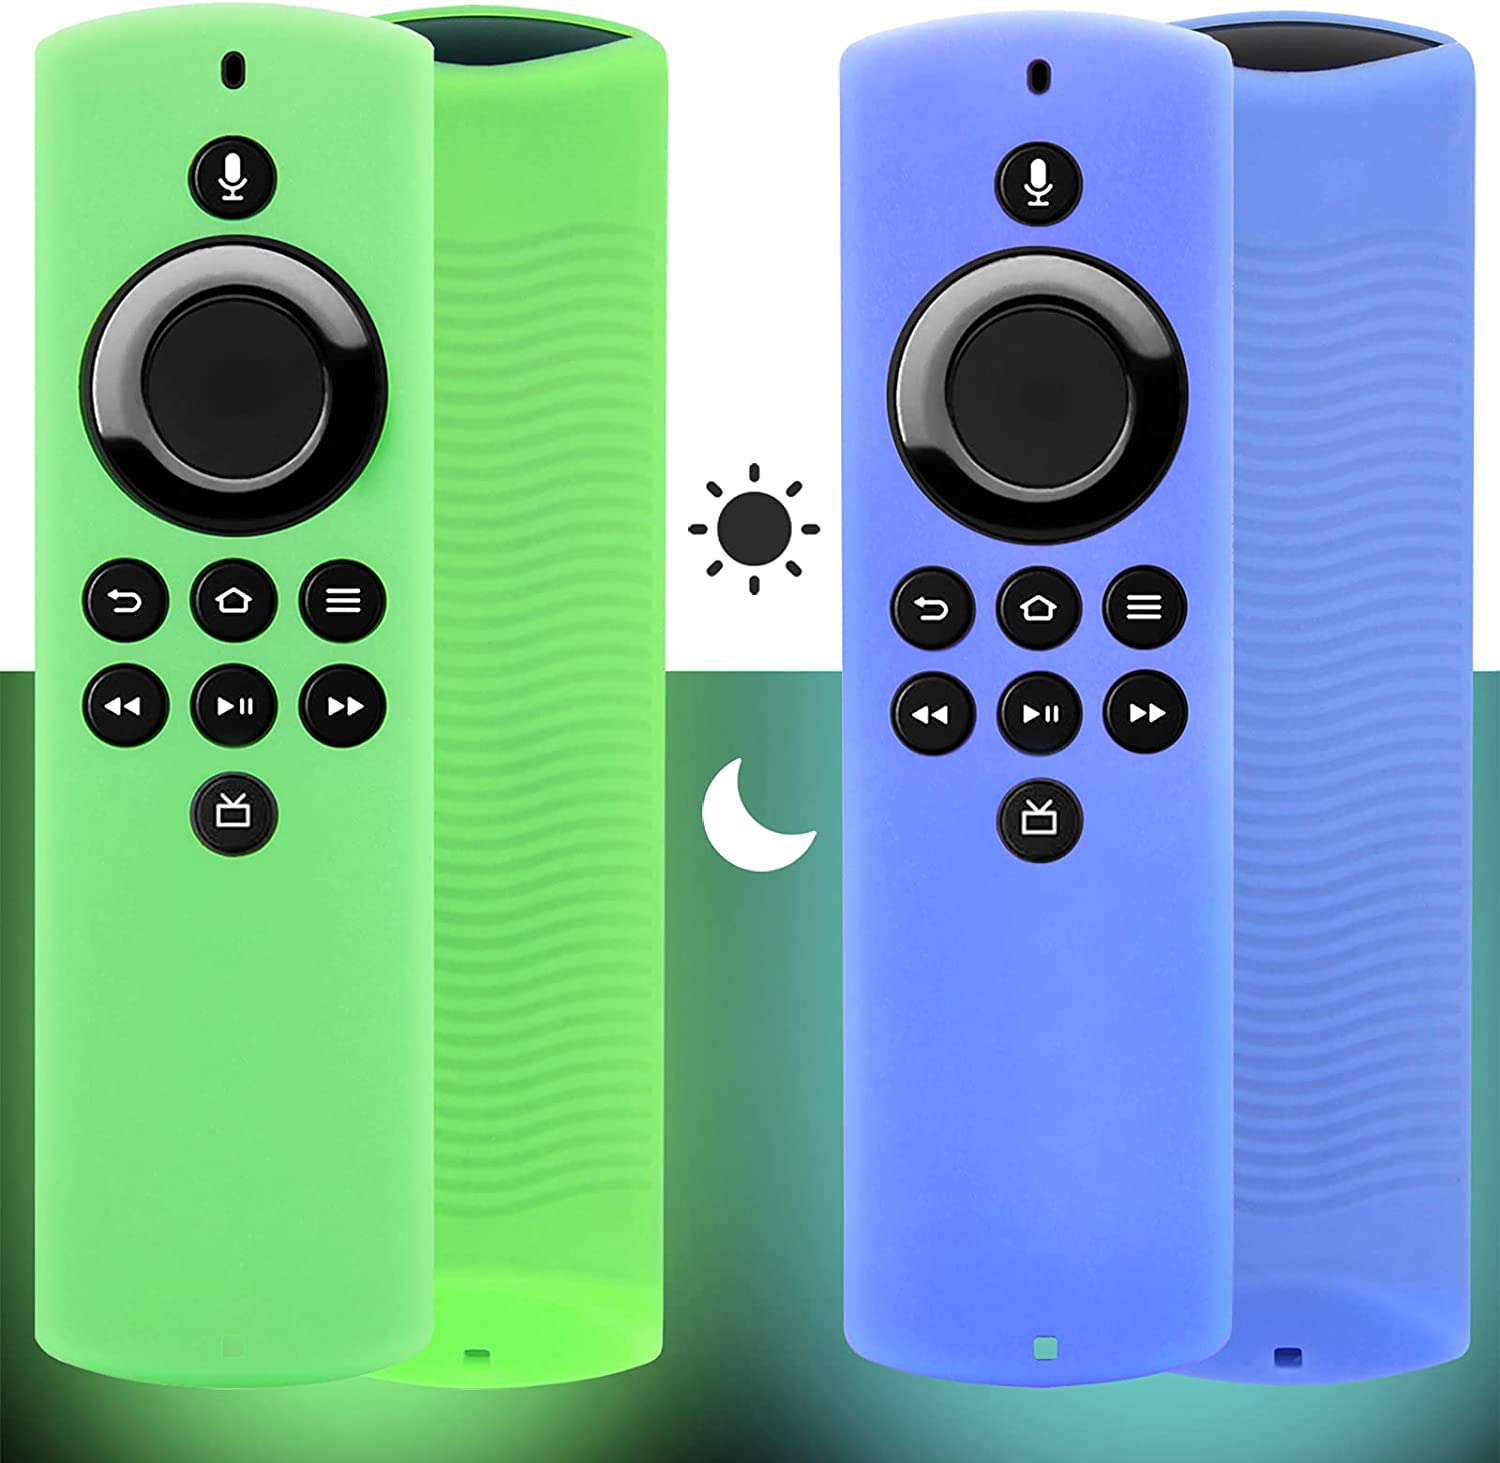 2pcs Firestick Lite Remote Cover Compatible with TV Firestick Lite 2020 (Glow in The Dark), Pinowu Firetv Silicone Cover Case with Wrist Strap for Newest Voice Remote lite (Green& Blue)